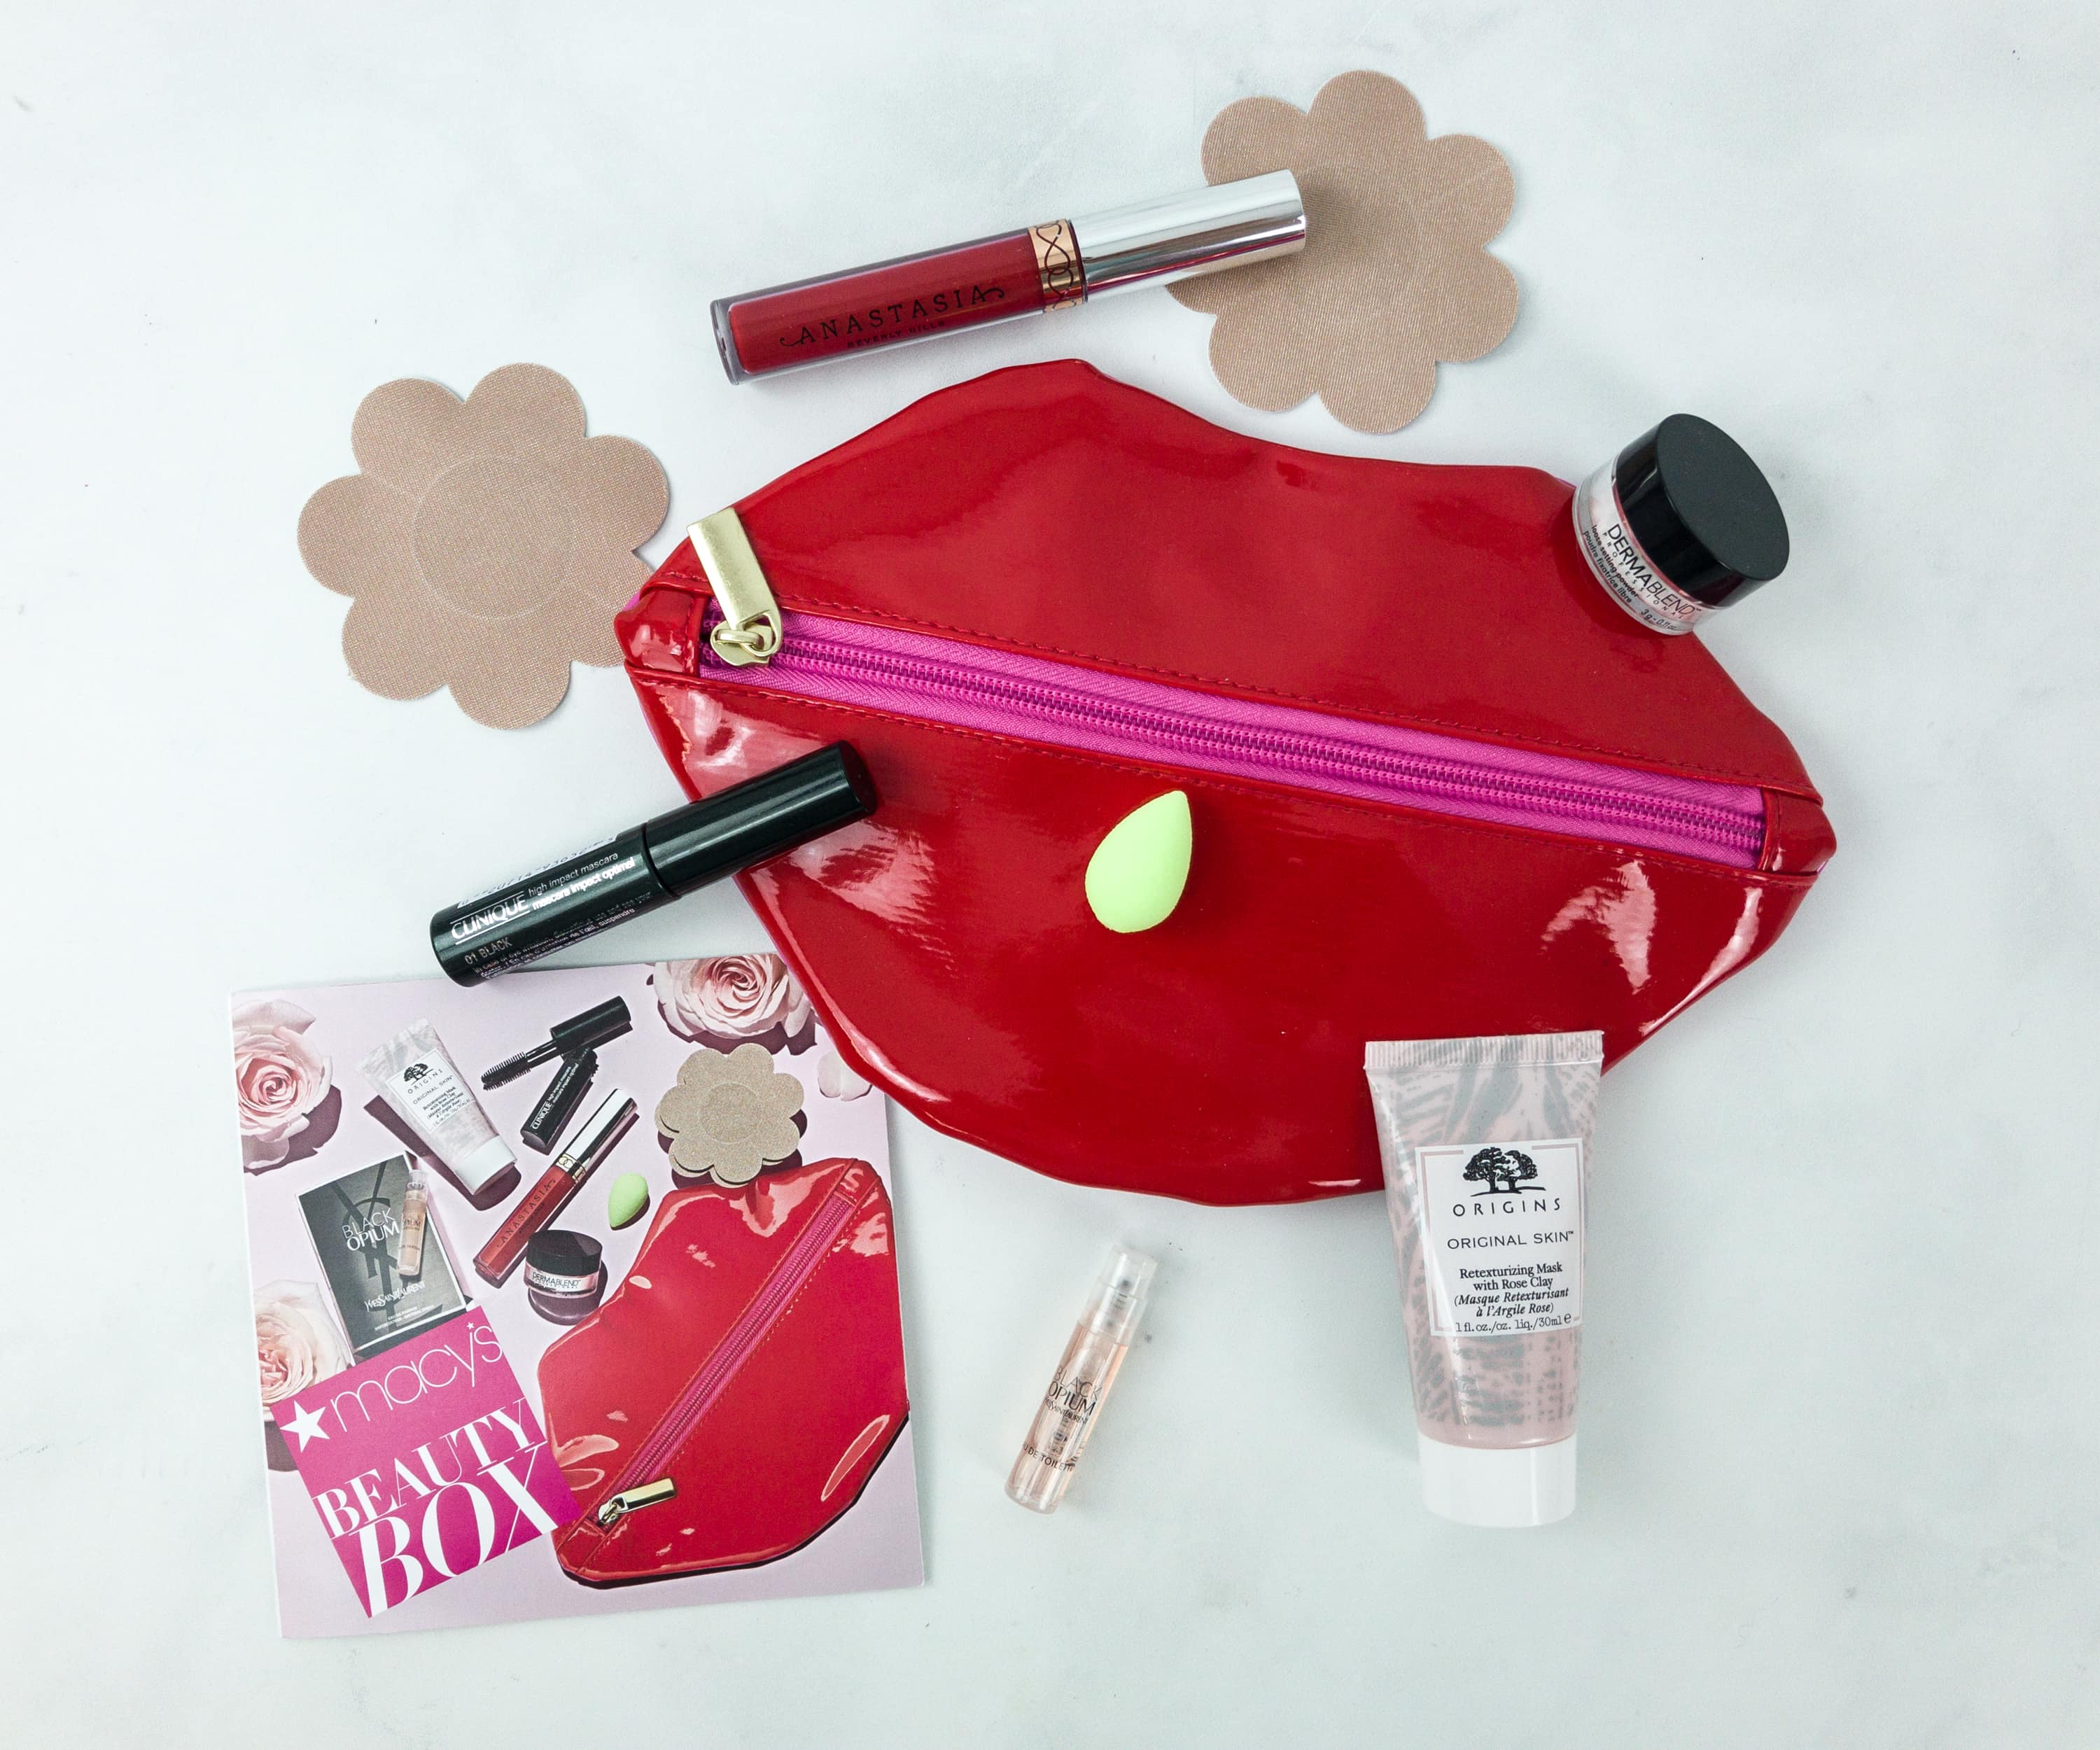 Macy's Beauty Box February 2019 Subscription Box Review